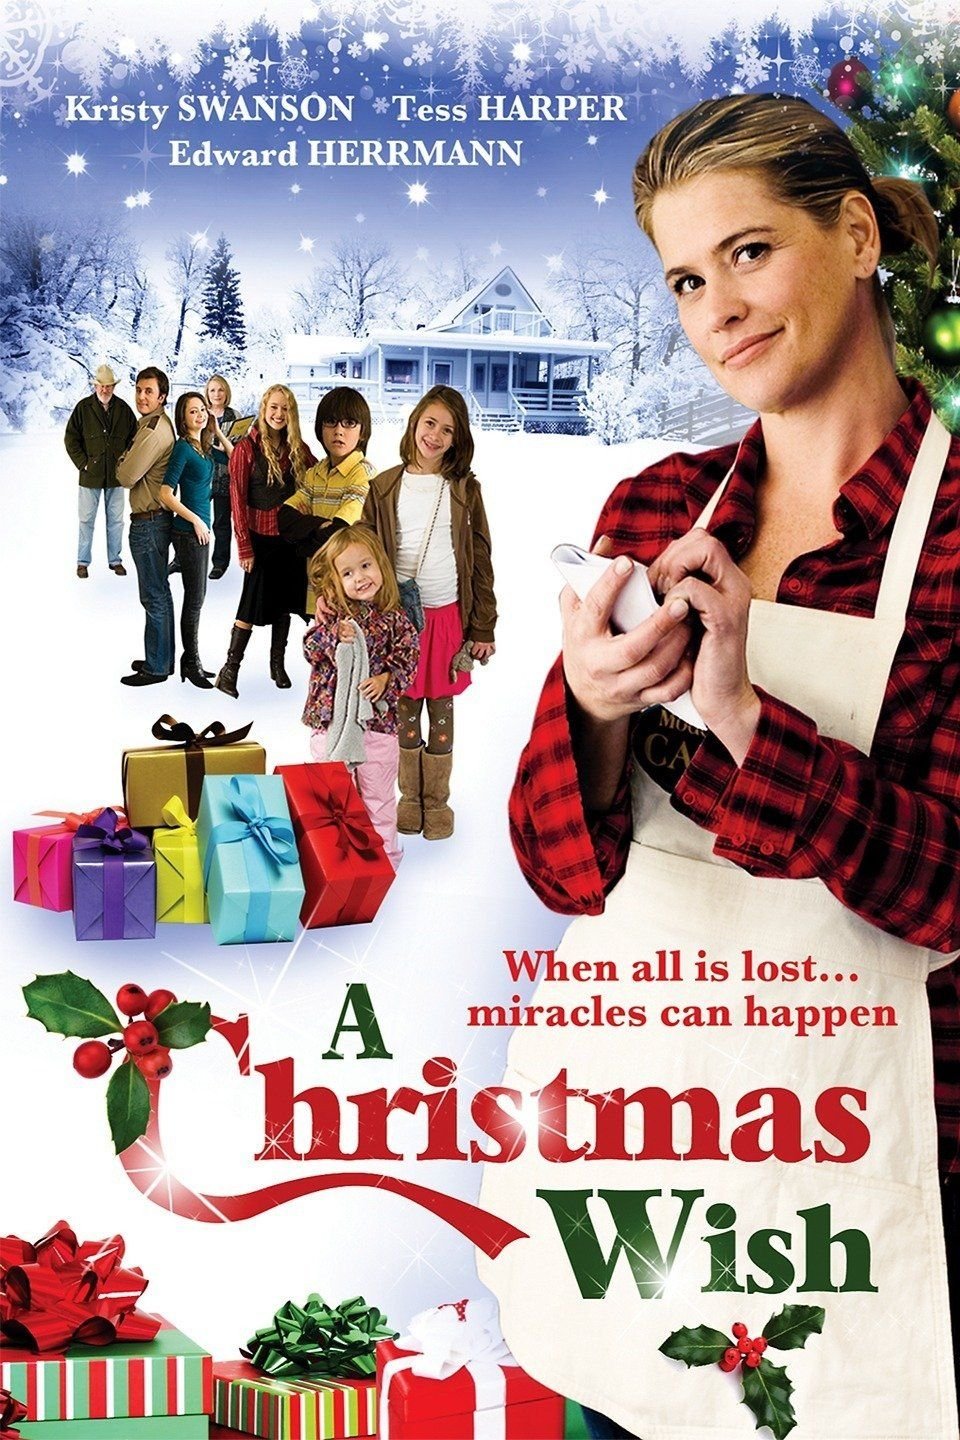 2011 Film A Christmas Wish Very Good Movie Showing The True Meaning Of Christmas Hallmark Christmas Movies Hallmark Movies Christmas Movies